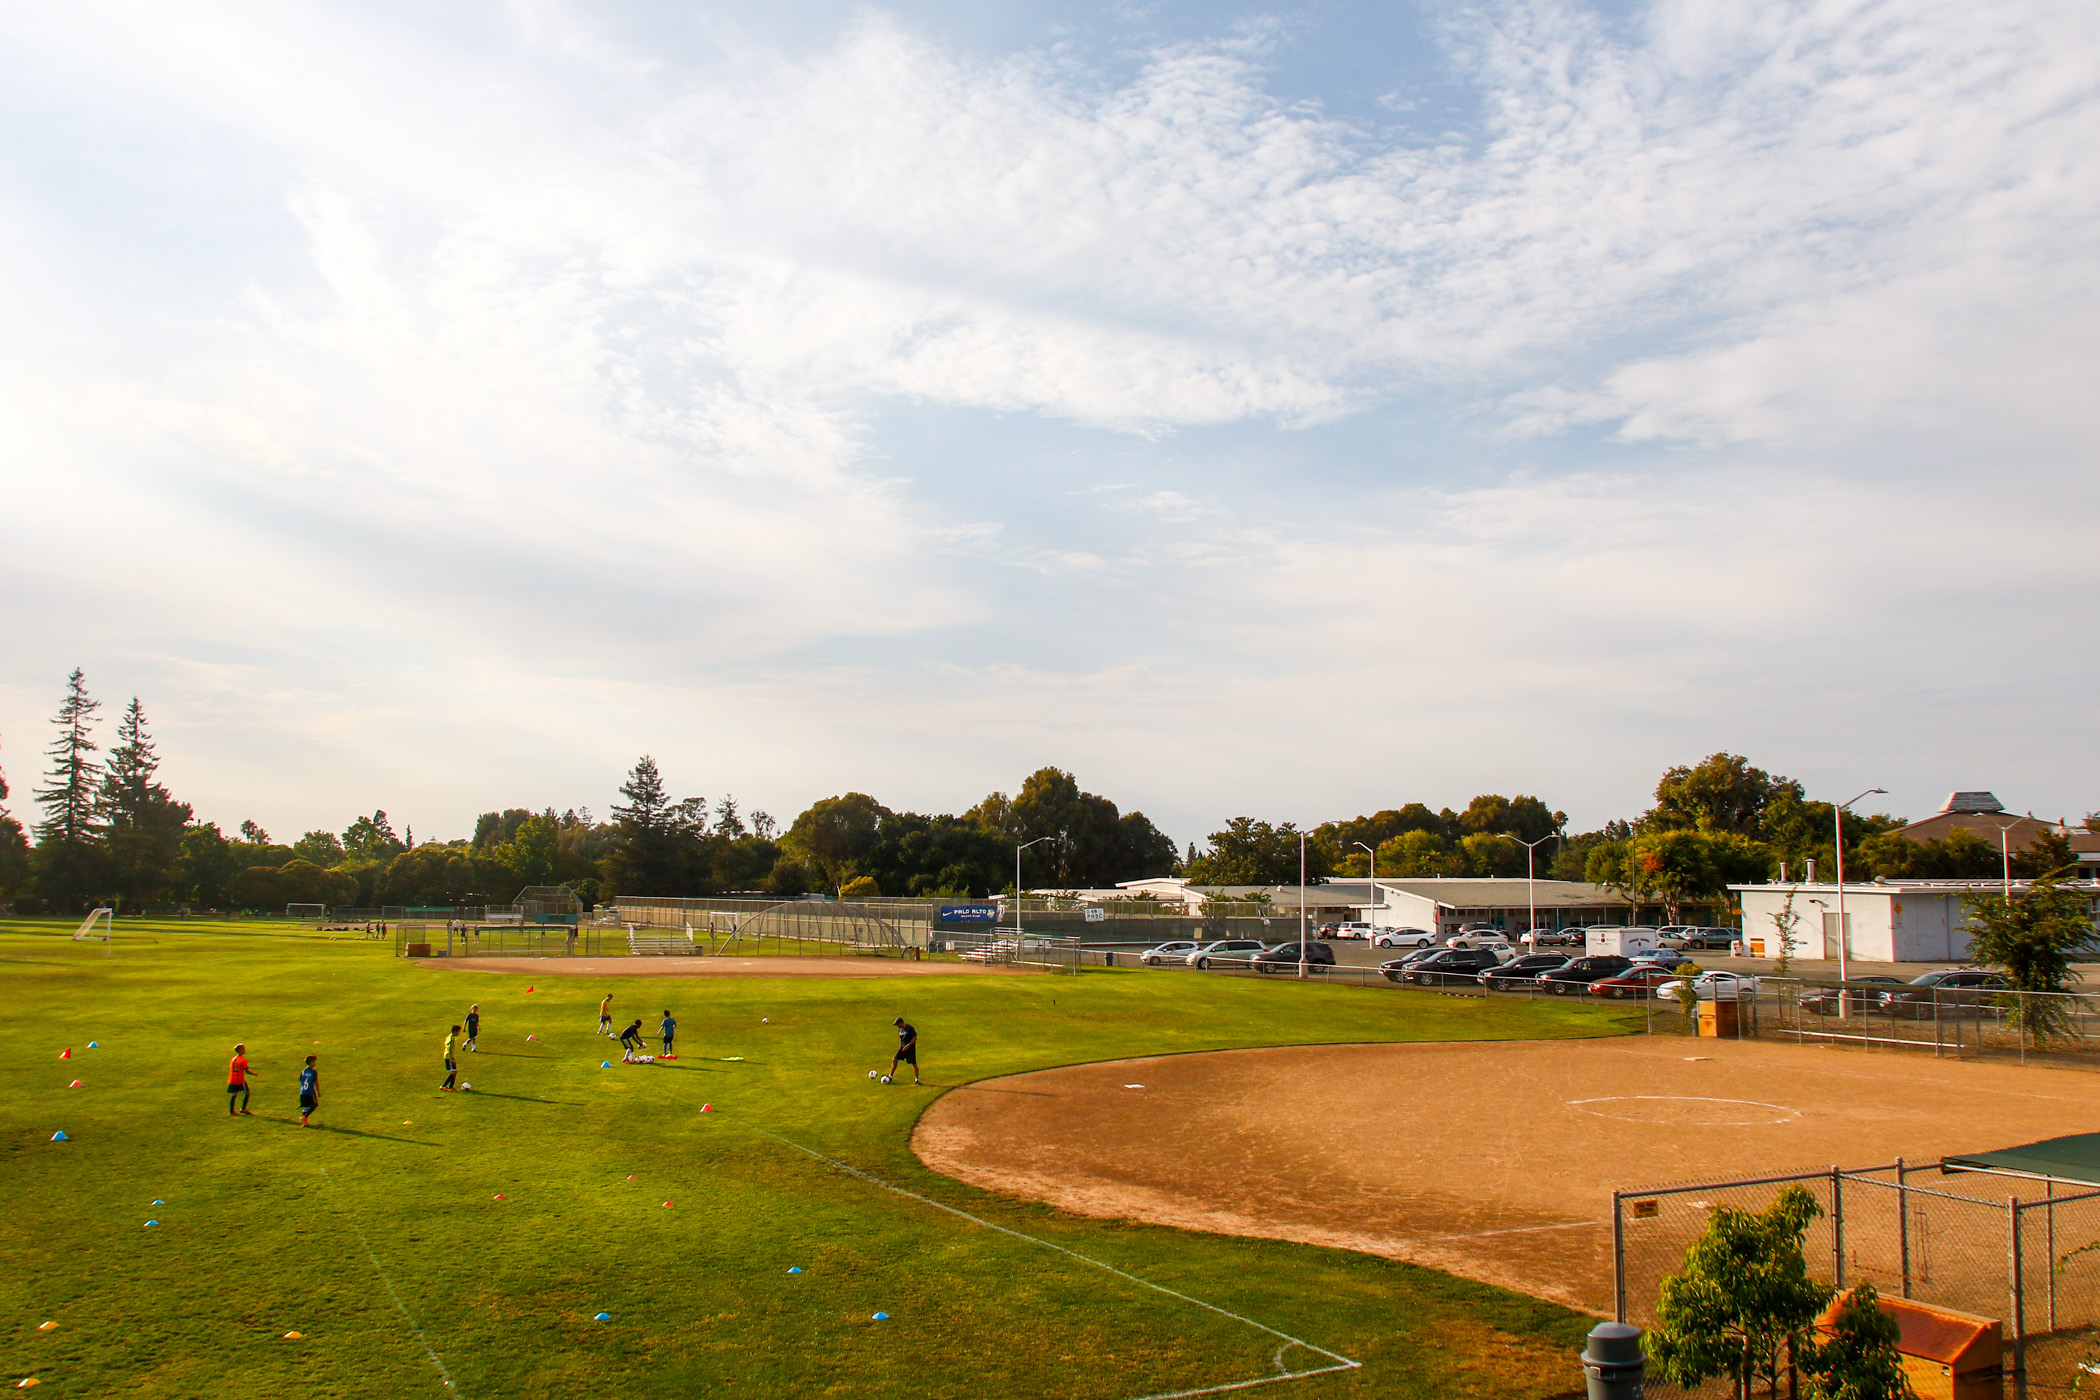 Players from the Palo Alto Soccer Club do drills at the soccer fields behind the main buildings at the Cubberley center, which has tennis courts, softball fields, soccer fields, a football field and running track.